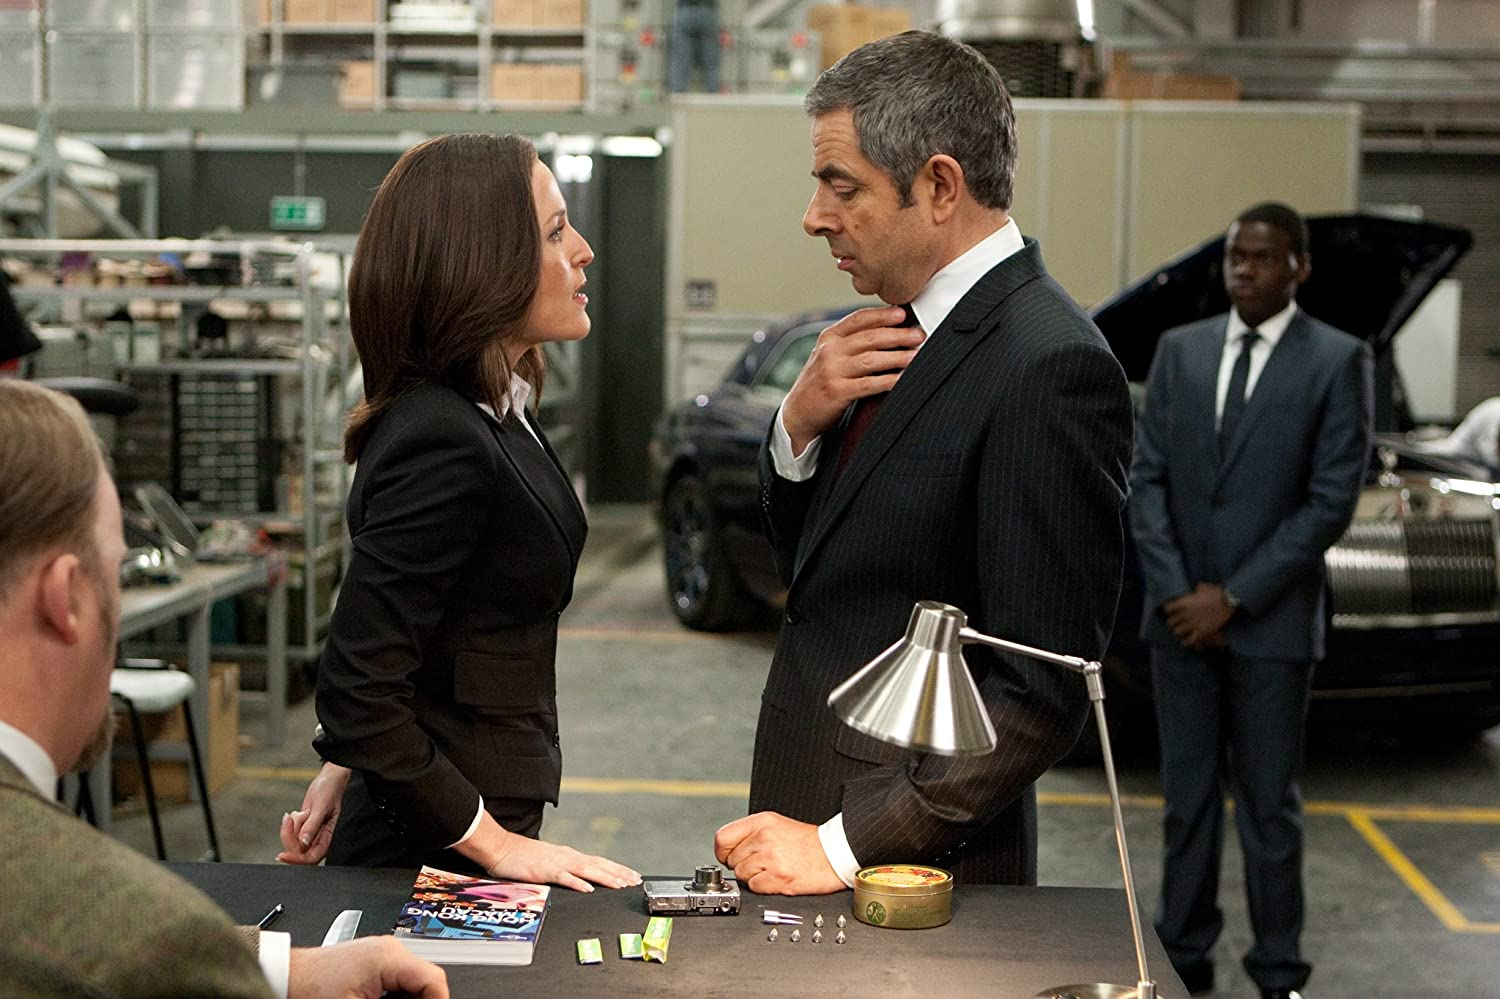 Gillian Anderson, Rowan Atkinson, and Daniel Kaluuya in Johnny English Reborn (2011)